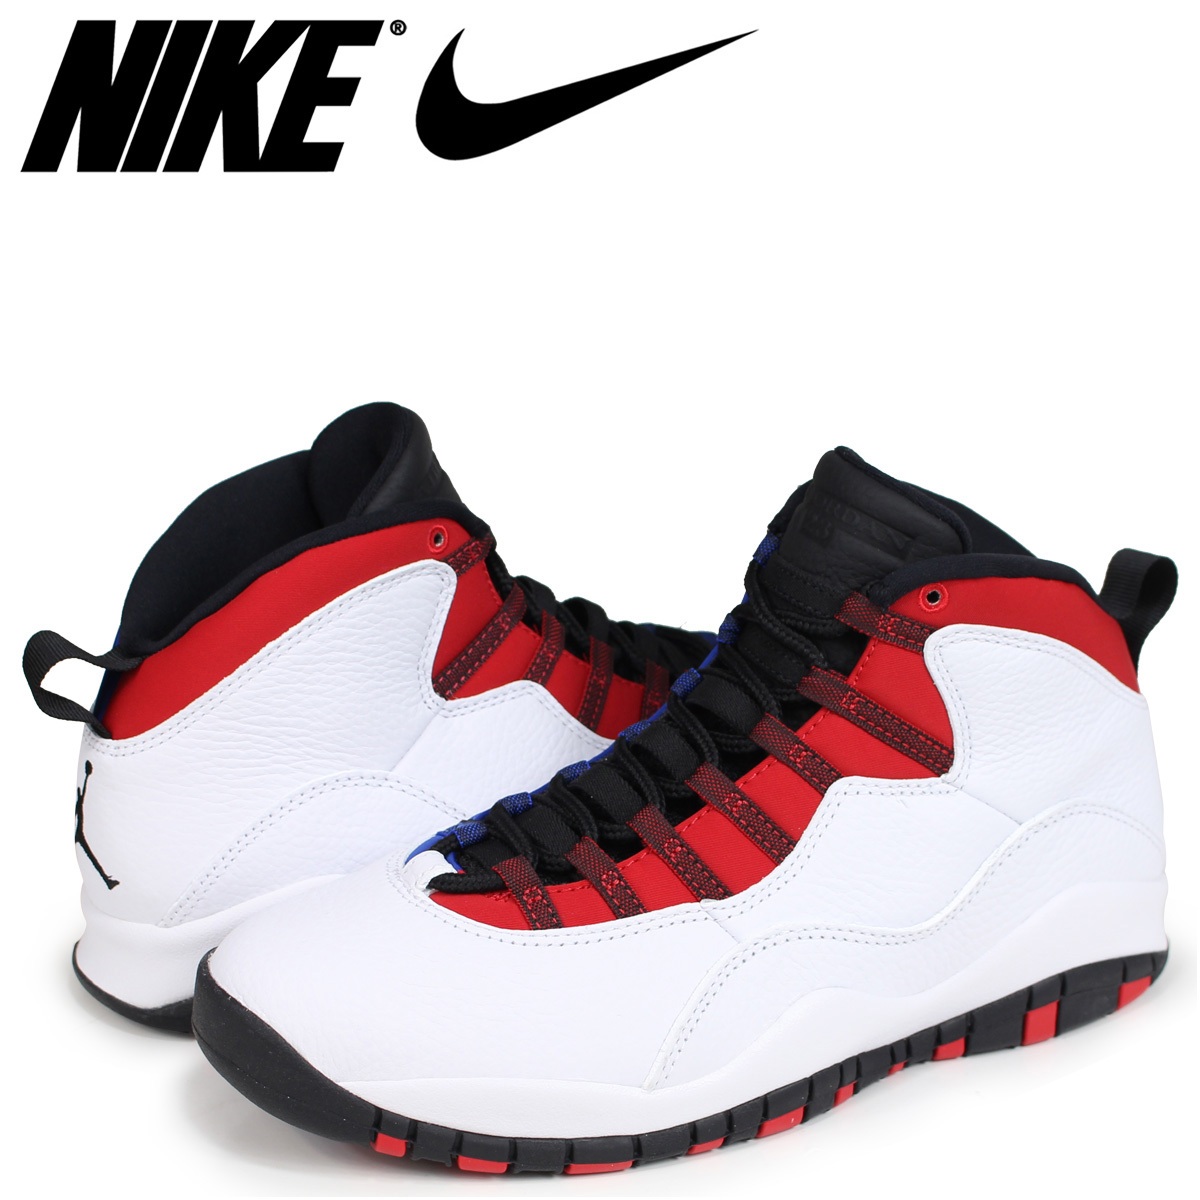 e575ebb63f4e26 NIKE AIR JORDAN 10 RETRO RUSSELL WESTBROOK Nike Air Jordan 10 sneakers  nostalgic men white 310